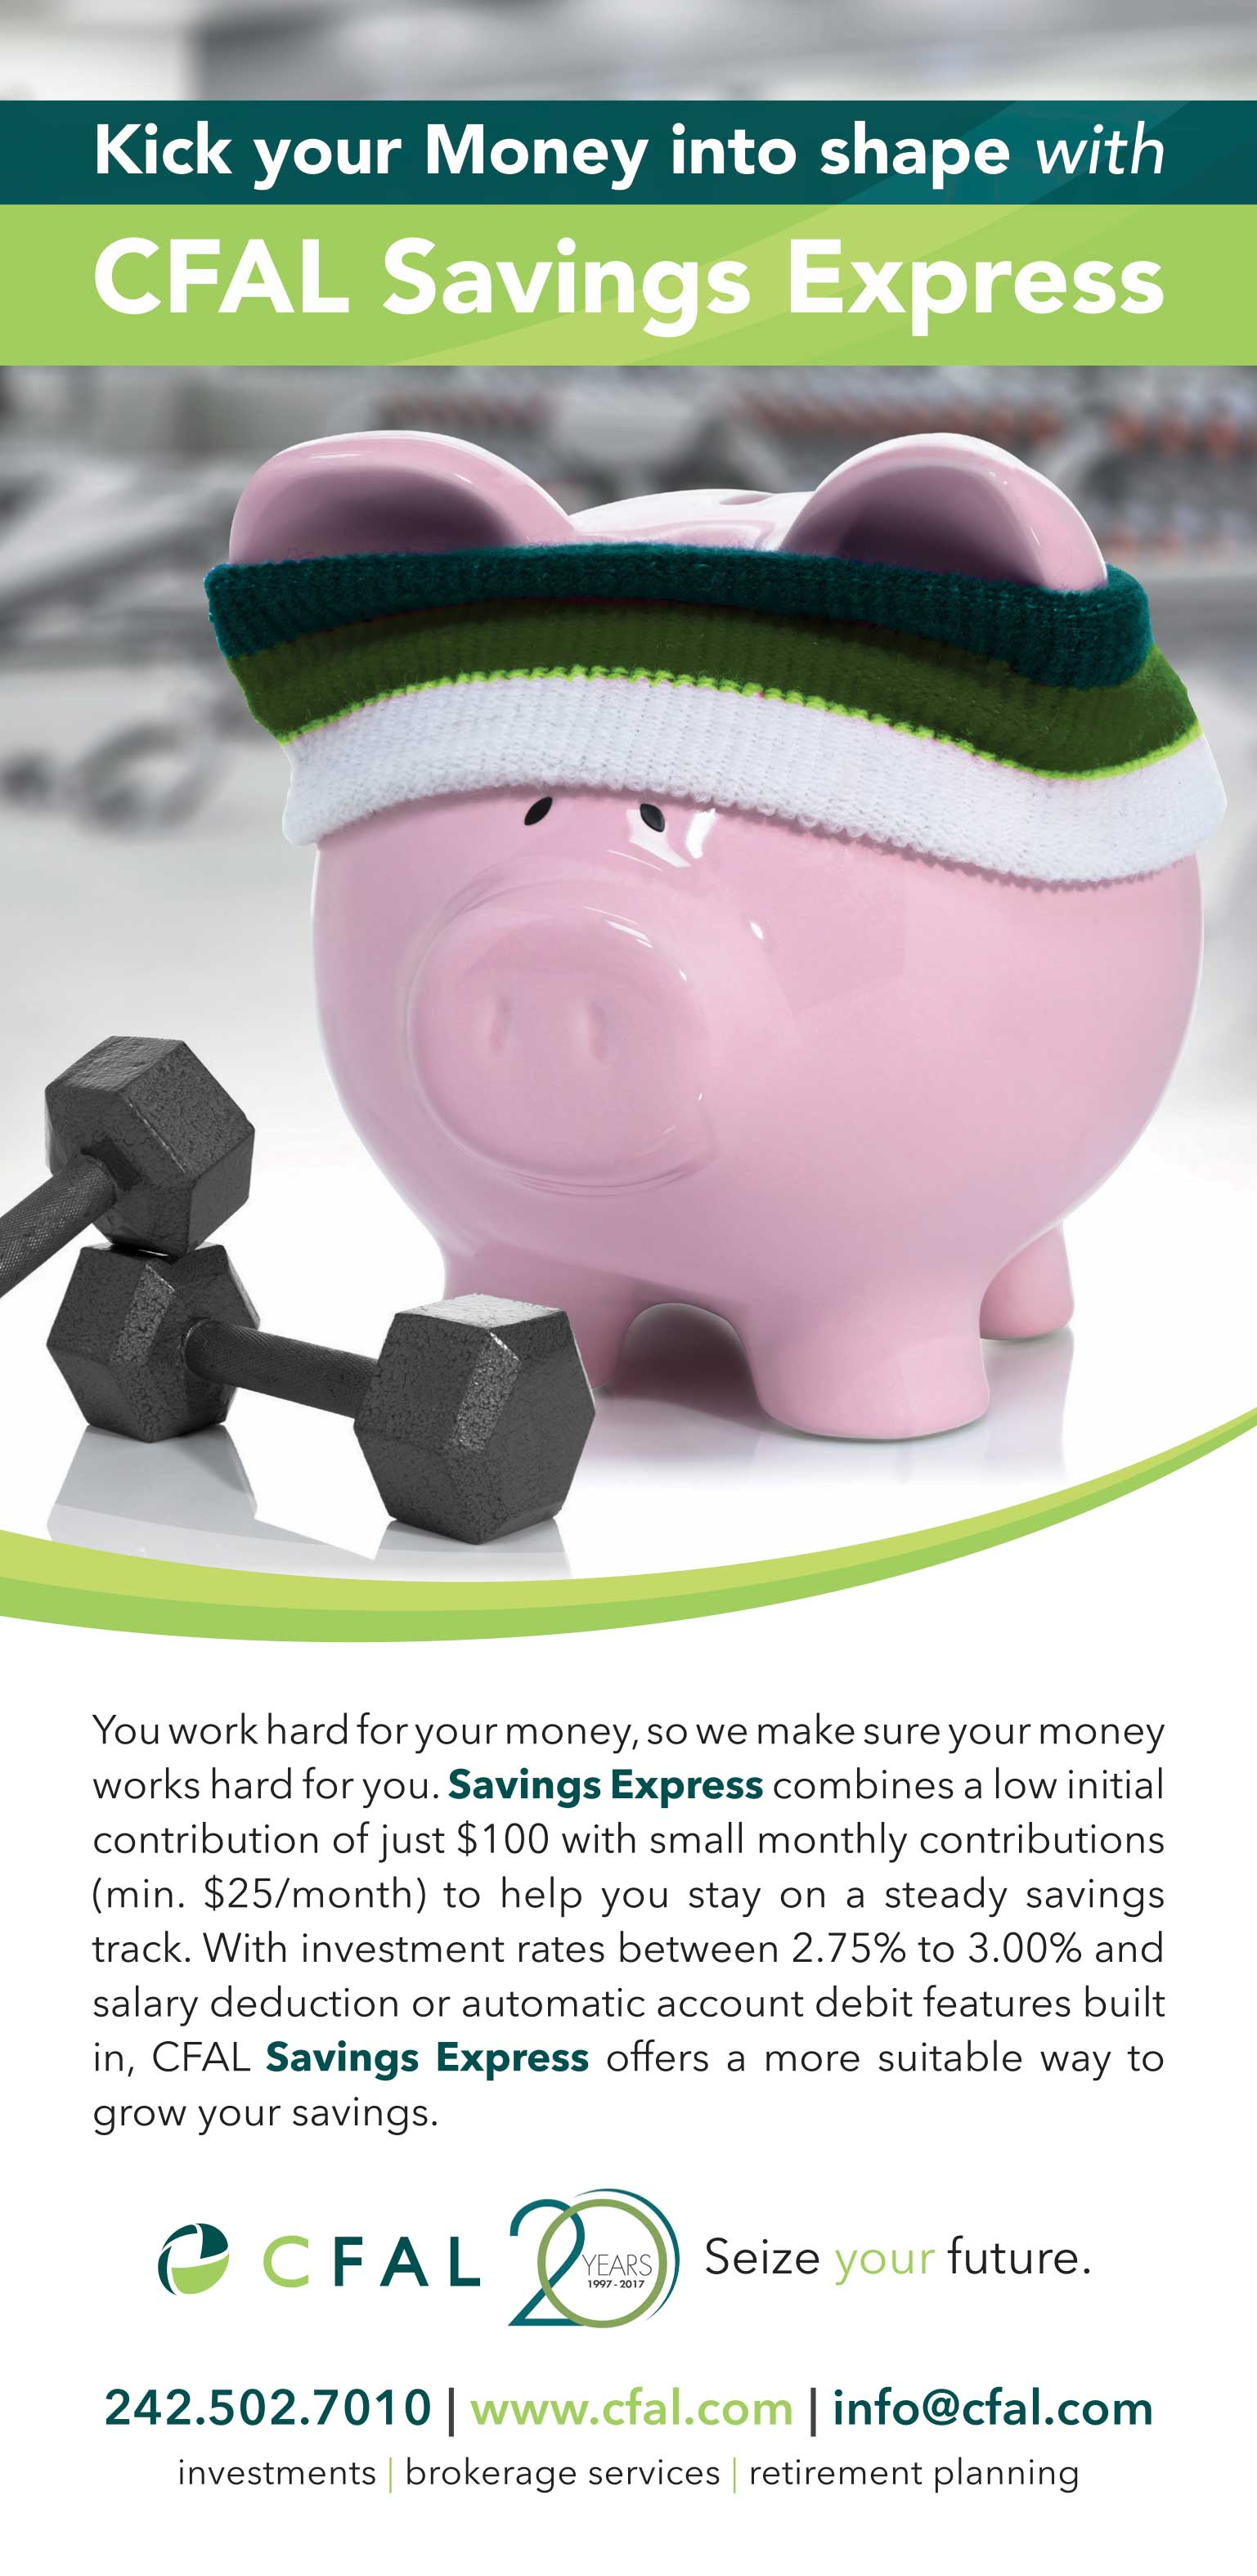 cfal-savings-express-ad_final3.jpg